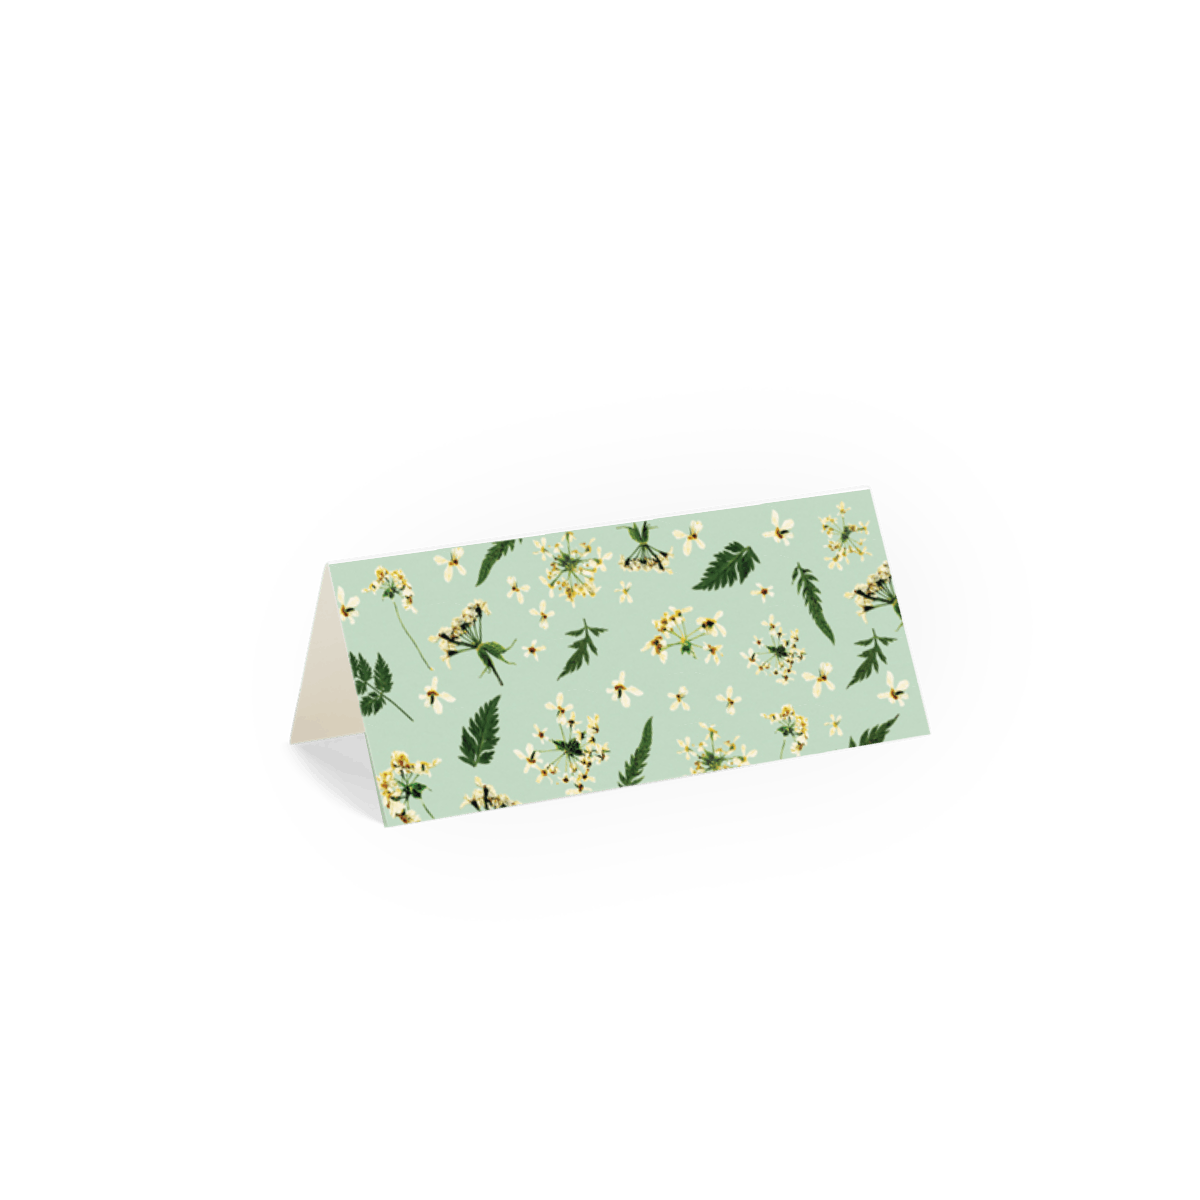 Https%3a%2f%2fwww.papier.com%2fproduct image%2f82107%2f15%2fcow parsley 19811 arriere 1562066661.png?ixlib=rb 1.1